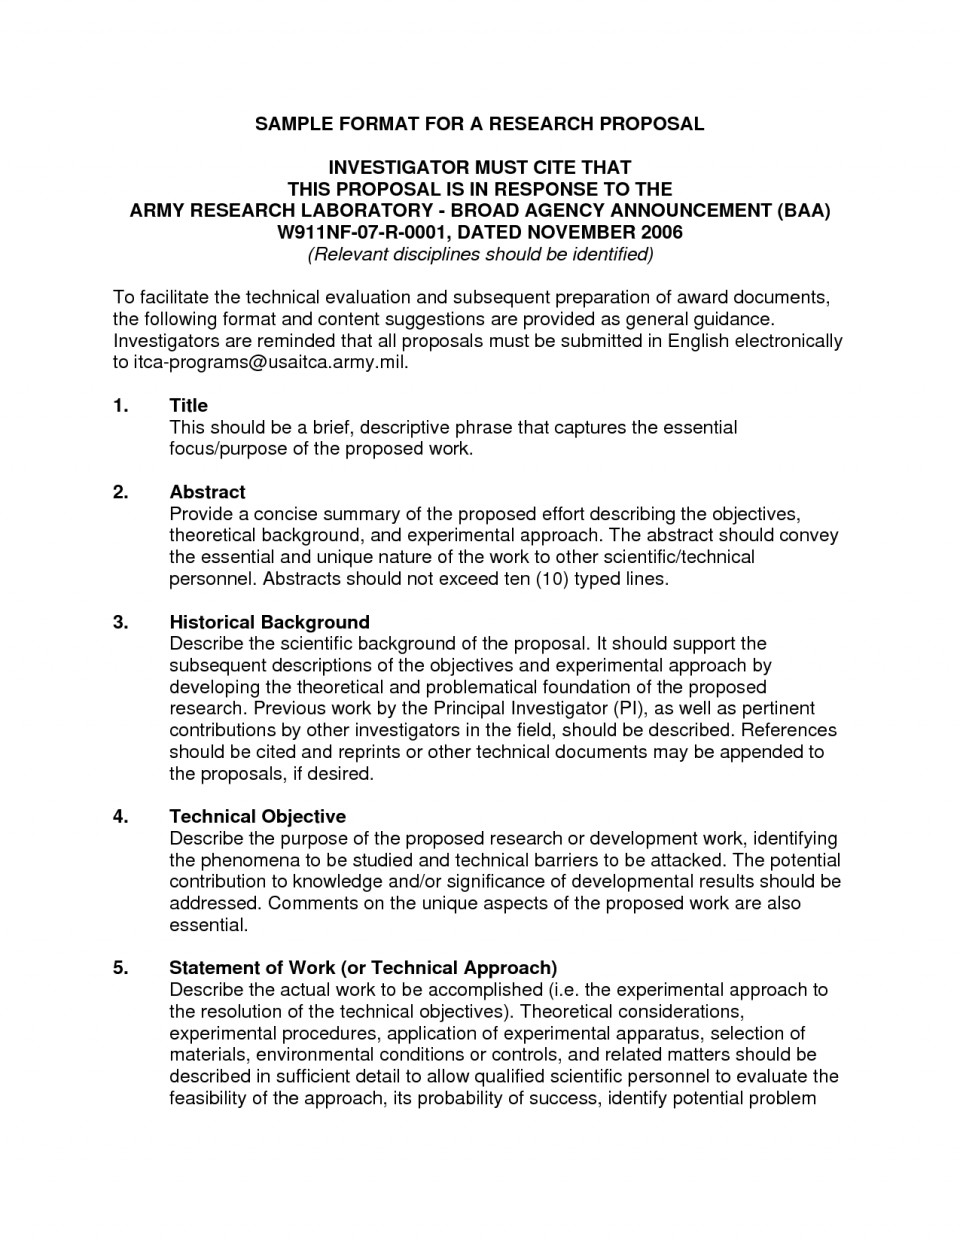 004 Research Proposal Template Qicmwzxw How To Write Abstract For Paper Stirring Ppt 960